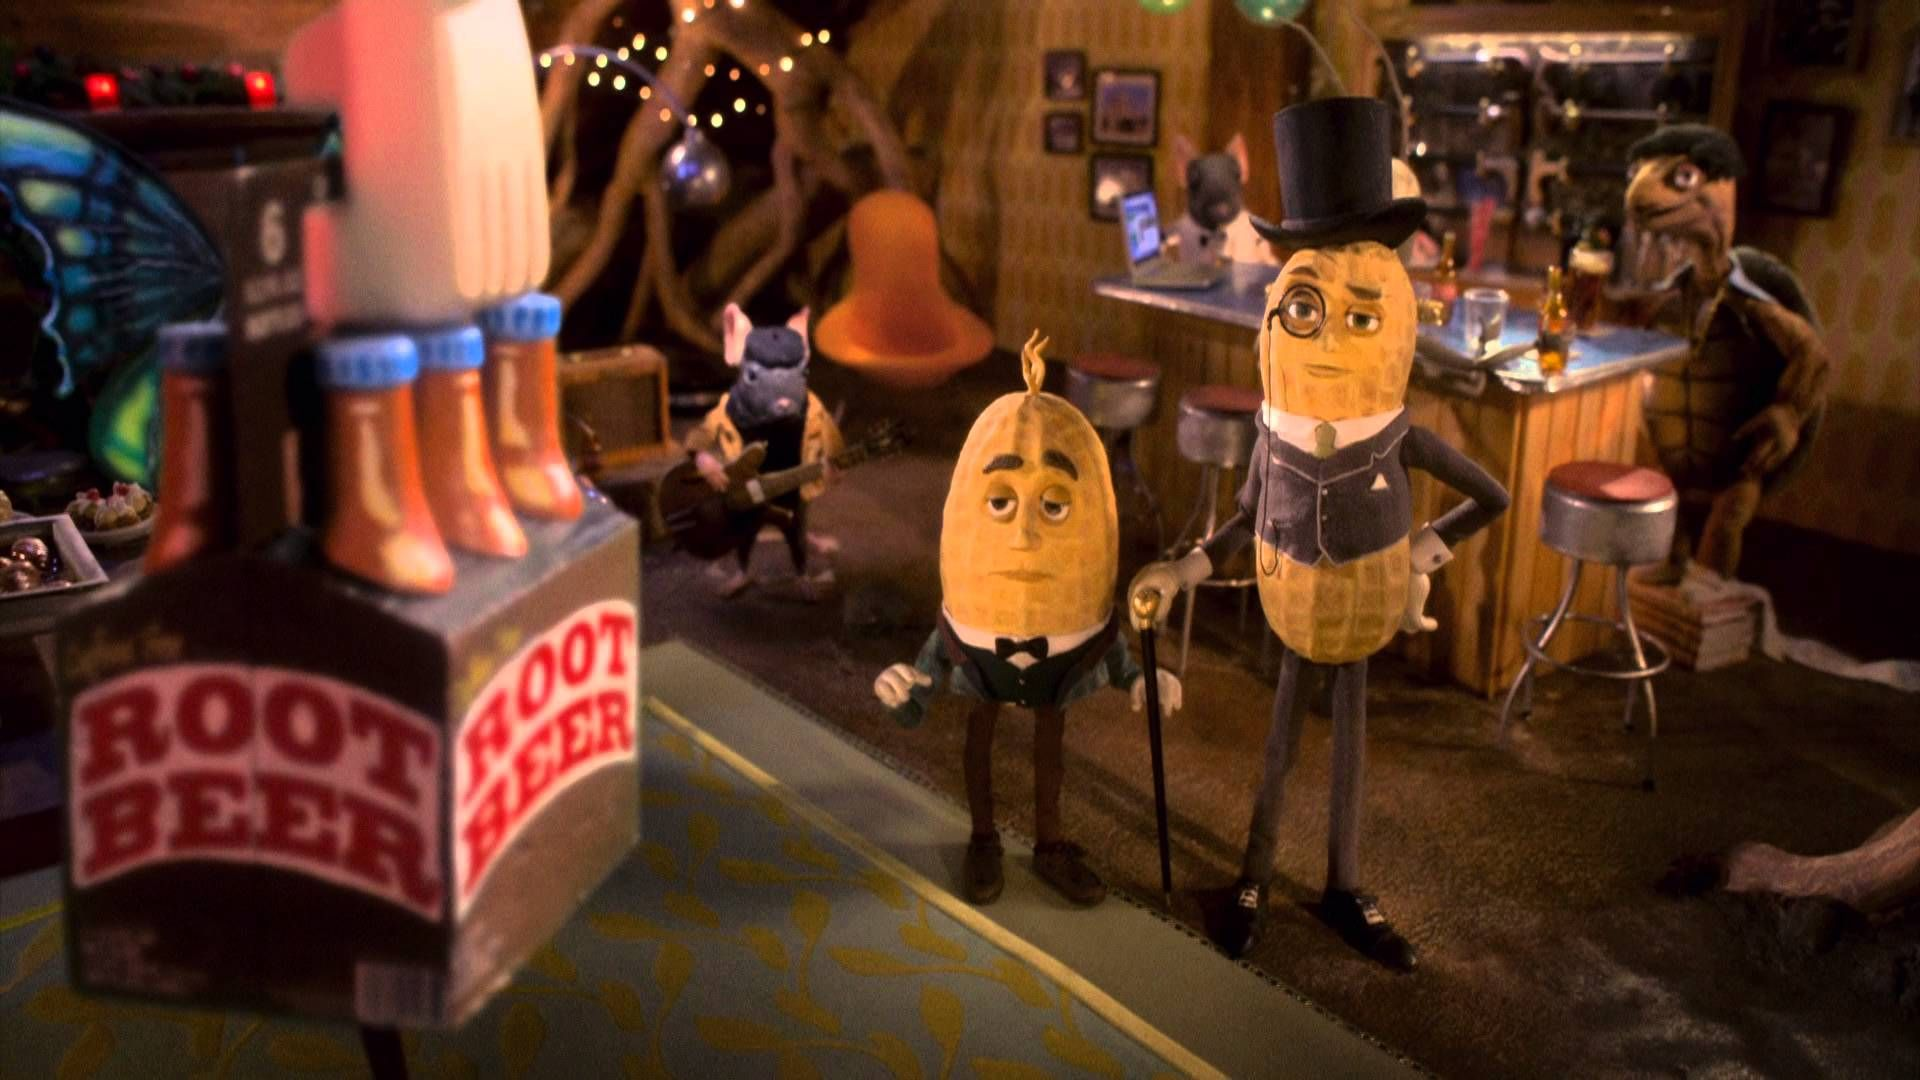 Christmas Planters Peanuts.Mr Peanut S Naturally Remarkable Holiday Party Planters